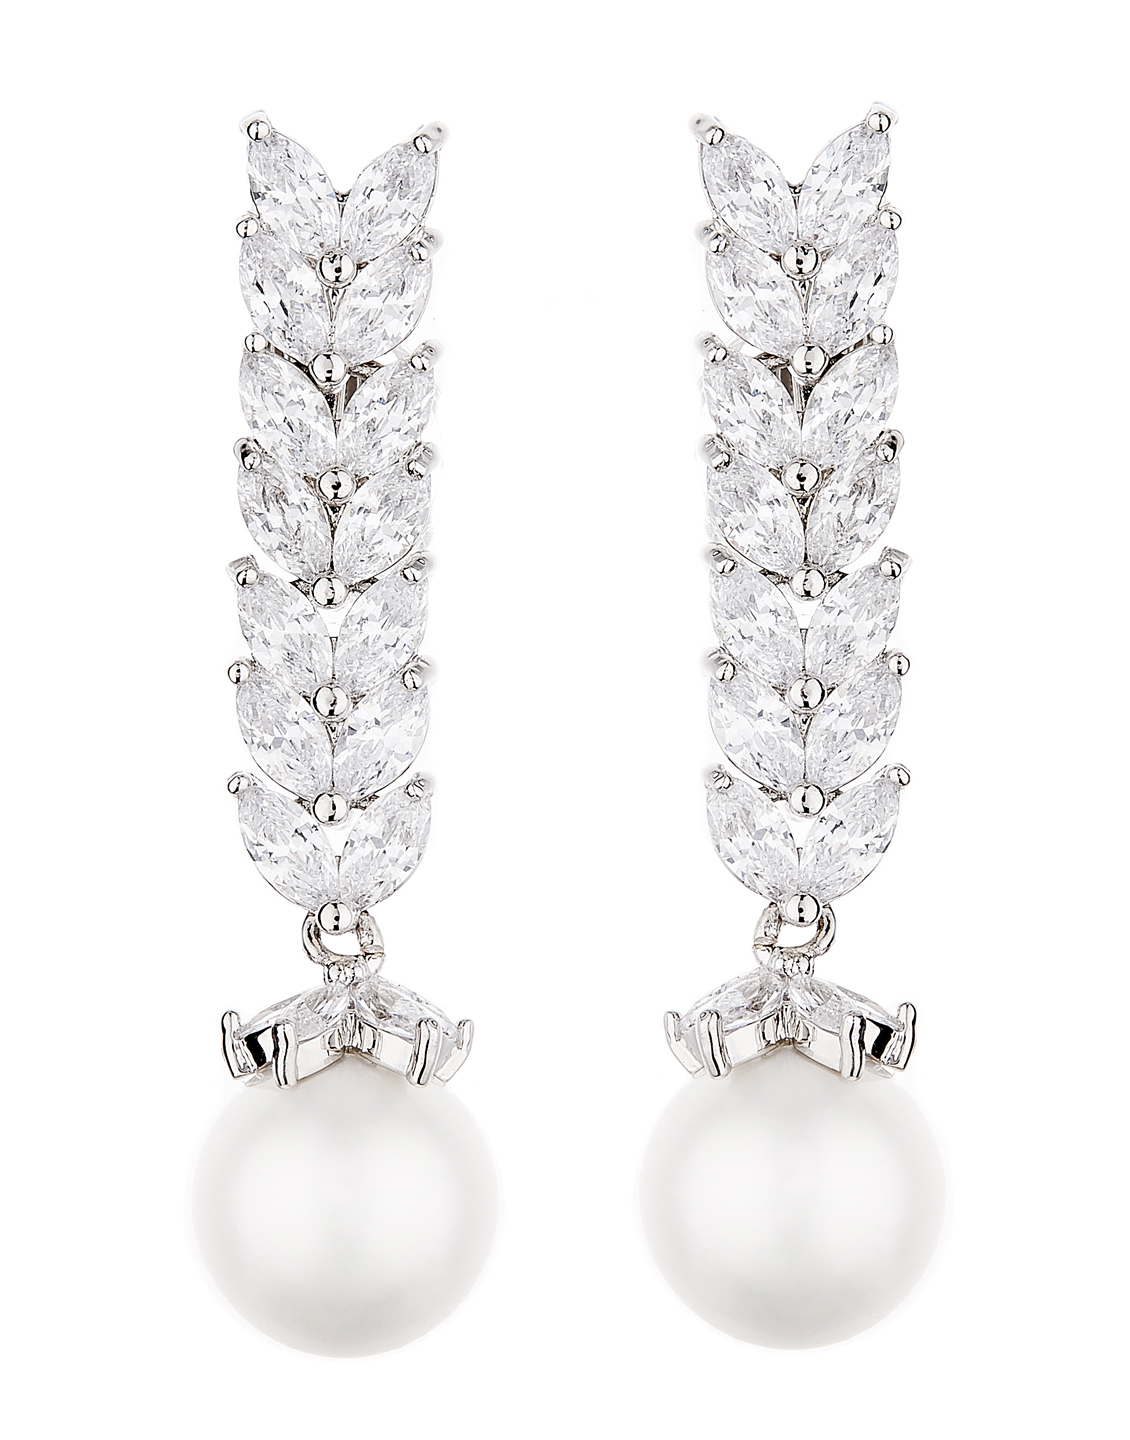 Clip On Earrings - Naomi S - silver luxury drop earring with a pearl and cubic zirconia stones